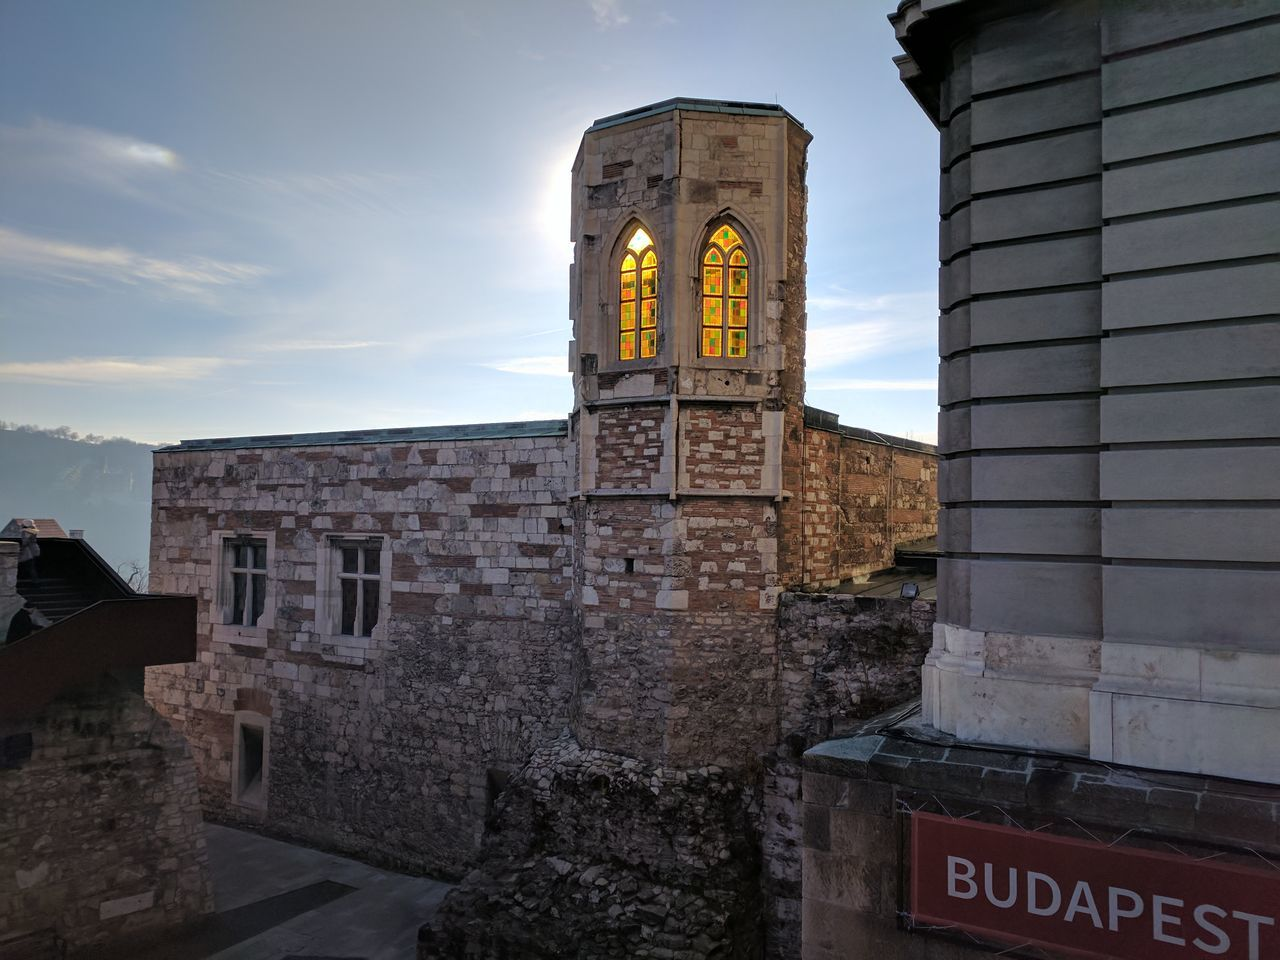 Architecture Travel Destinations Stained Glass Stained Glass Window History Sky Outdoor Buda Castle Ancient Ancient Civilization Built Structure Light Light Through The Window Outdoors Castle Contrasting Colors Blue Sky Beams Of Light